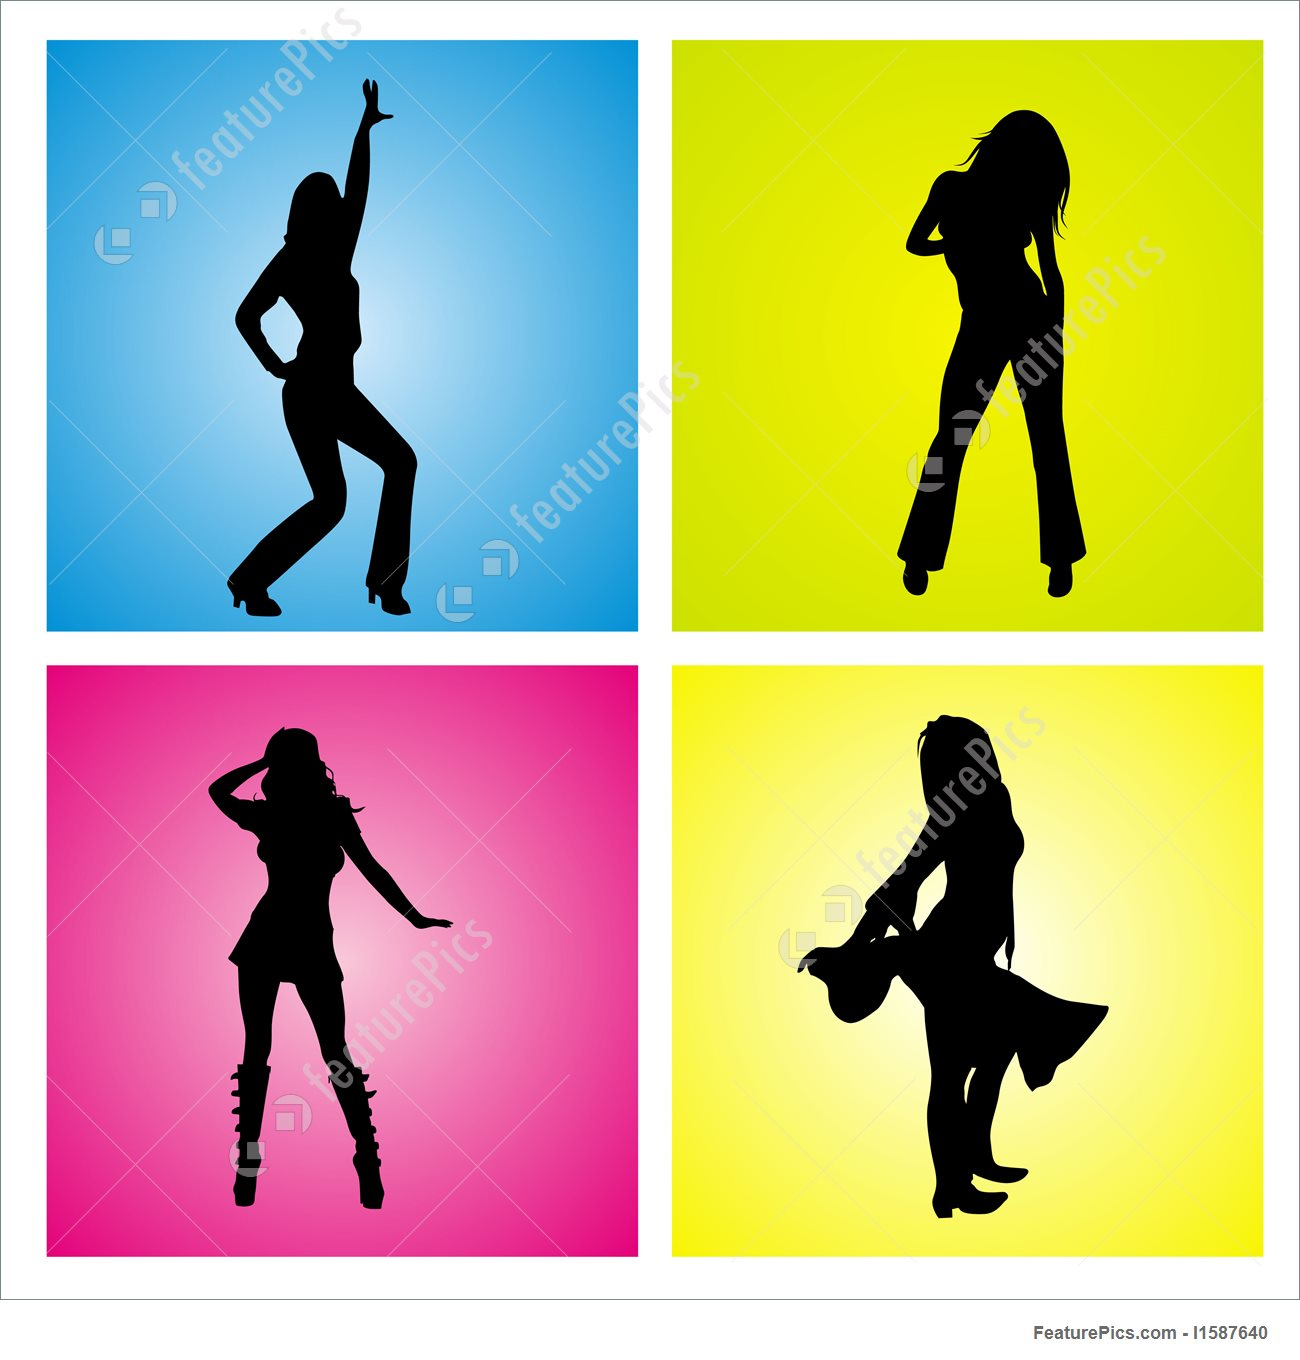 1300x1360 Silhouette Girls Dancing In 4 Themes Stock Illustration I1587640